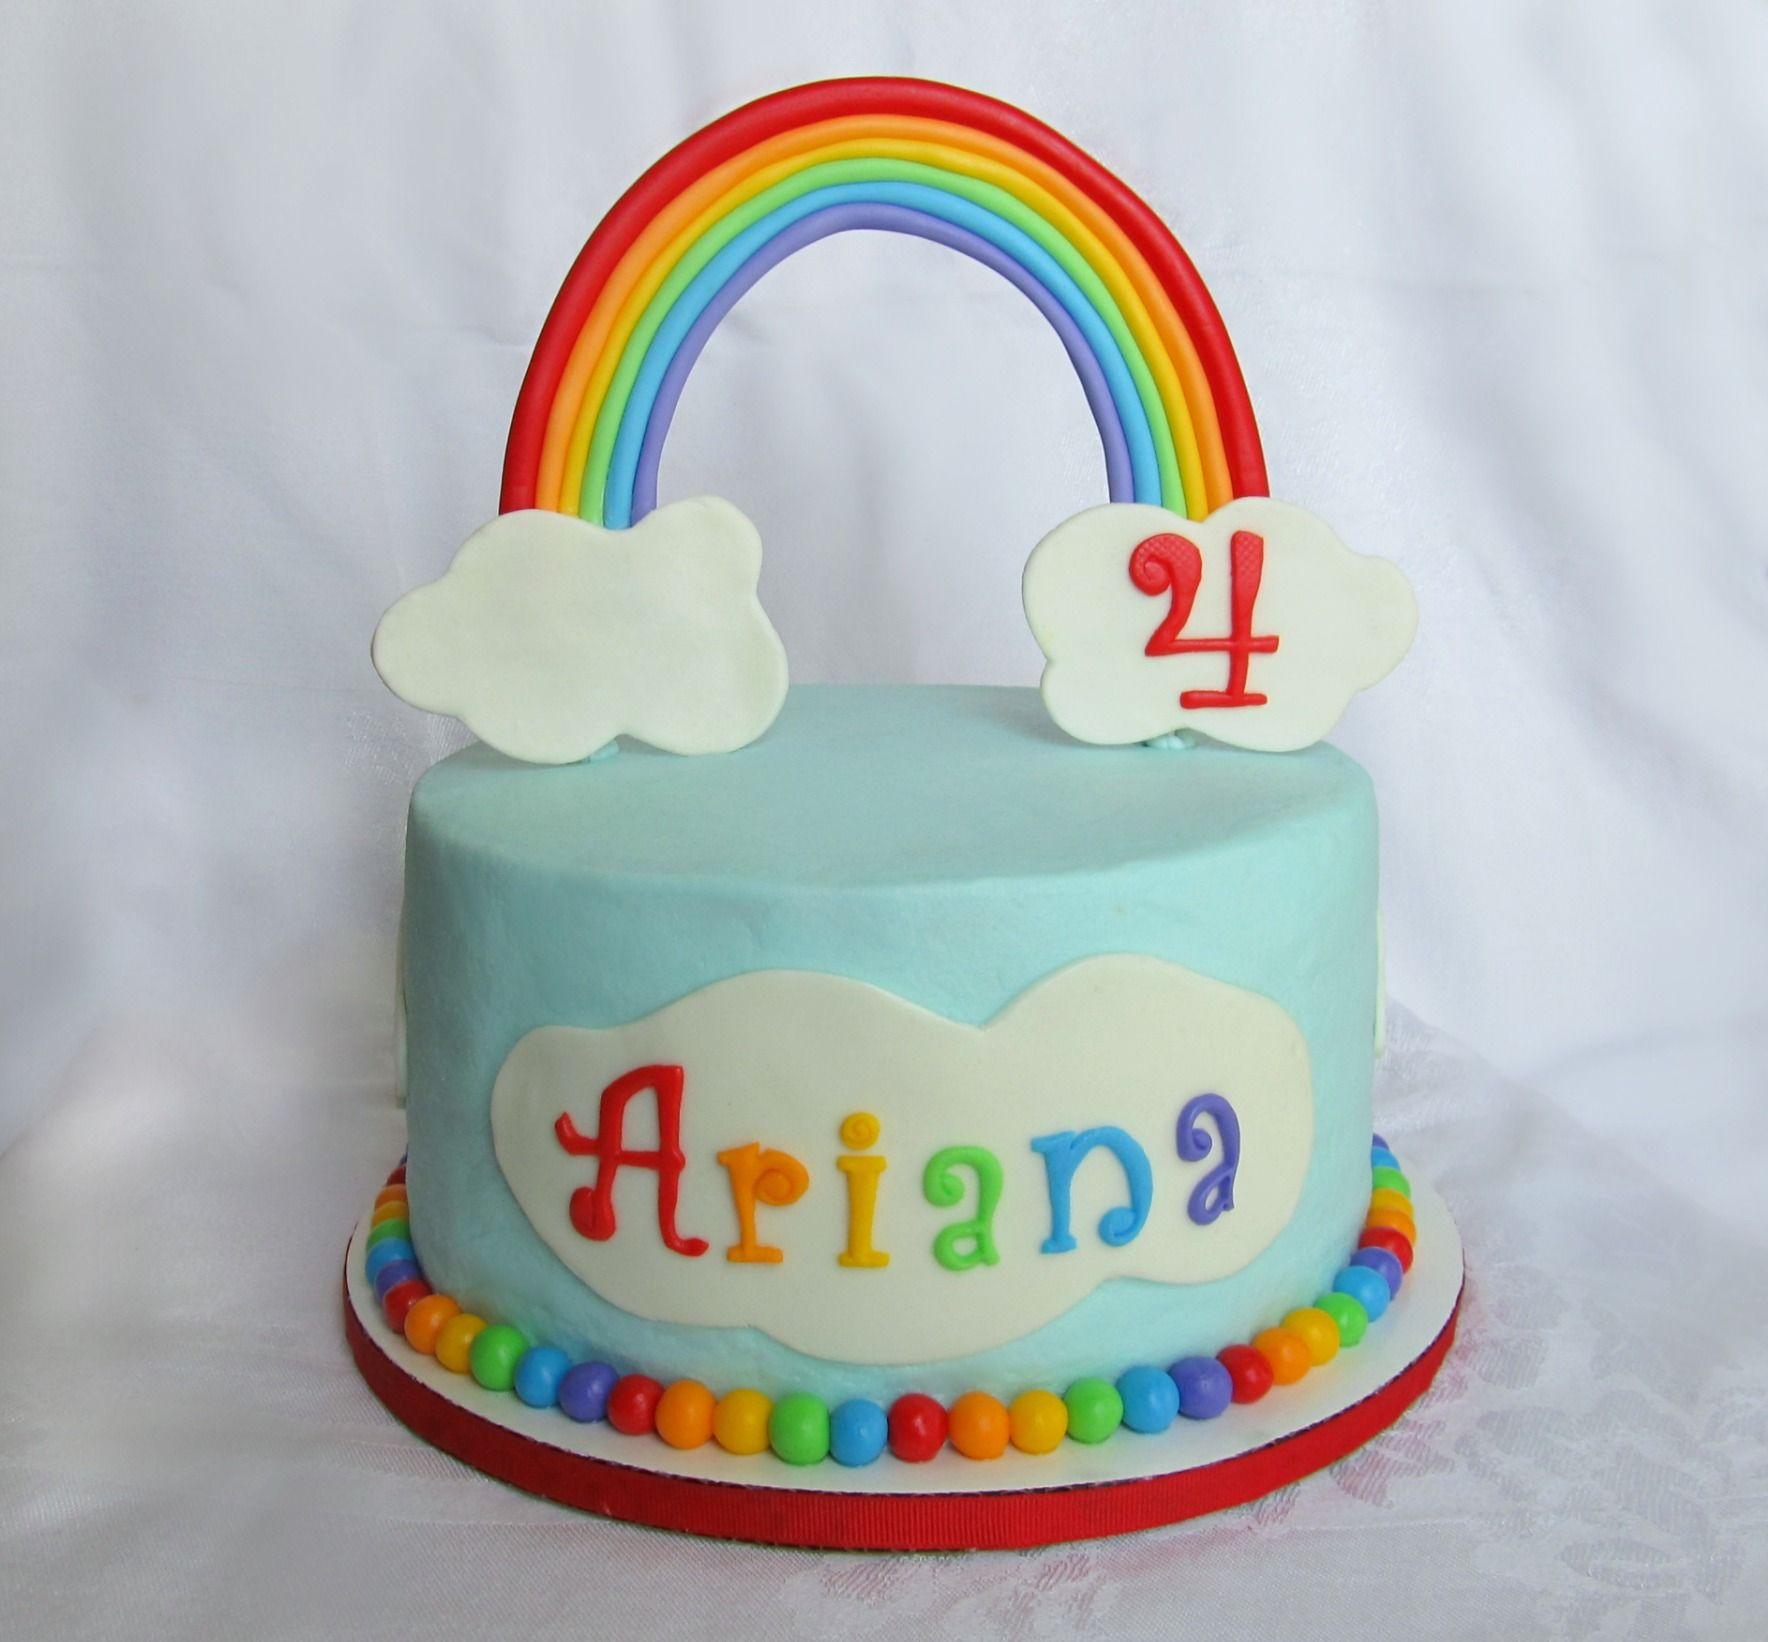 Rainbow Cake Like This But Rainbow Flat Puffy On Top Of The Cake